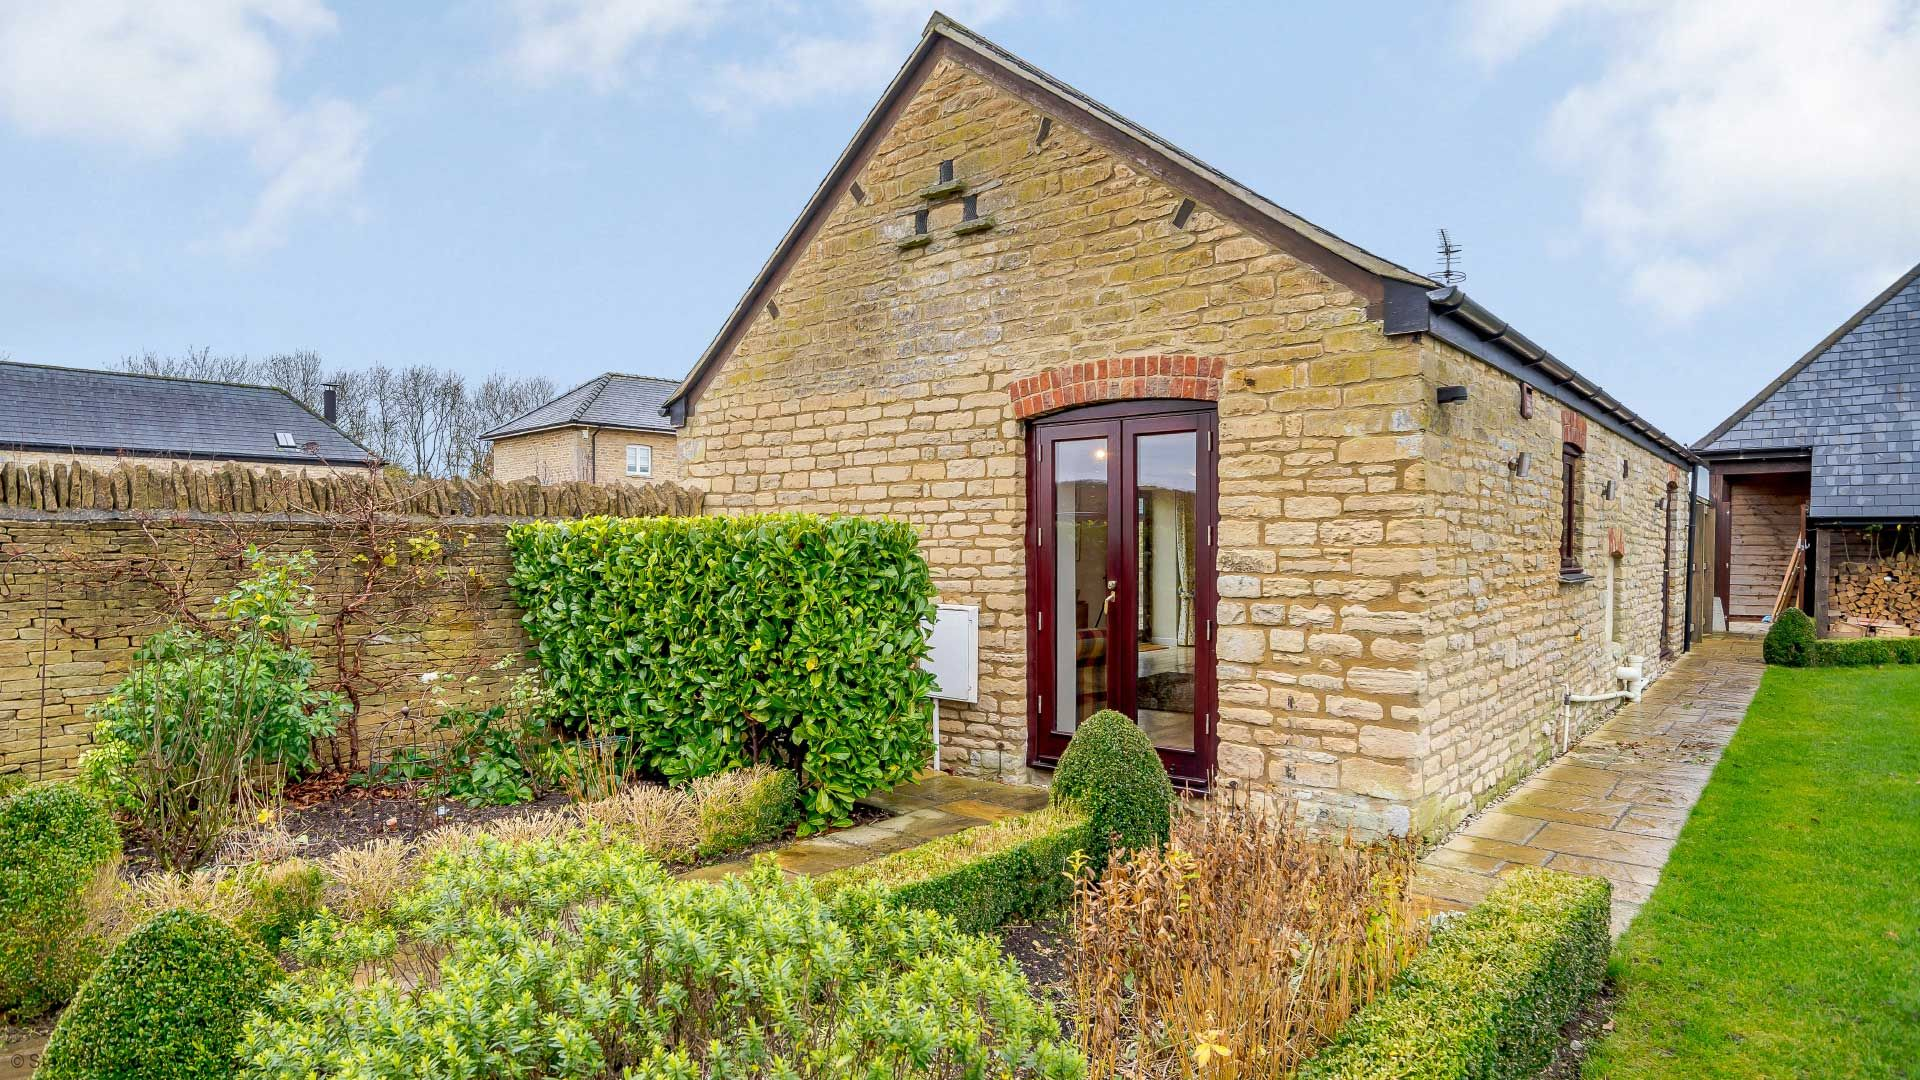 Coursehill Barn Annex - StayCotswold